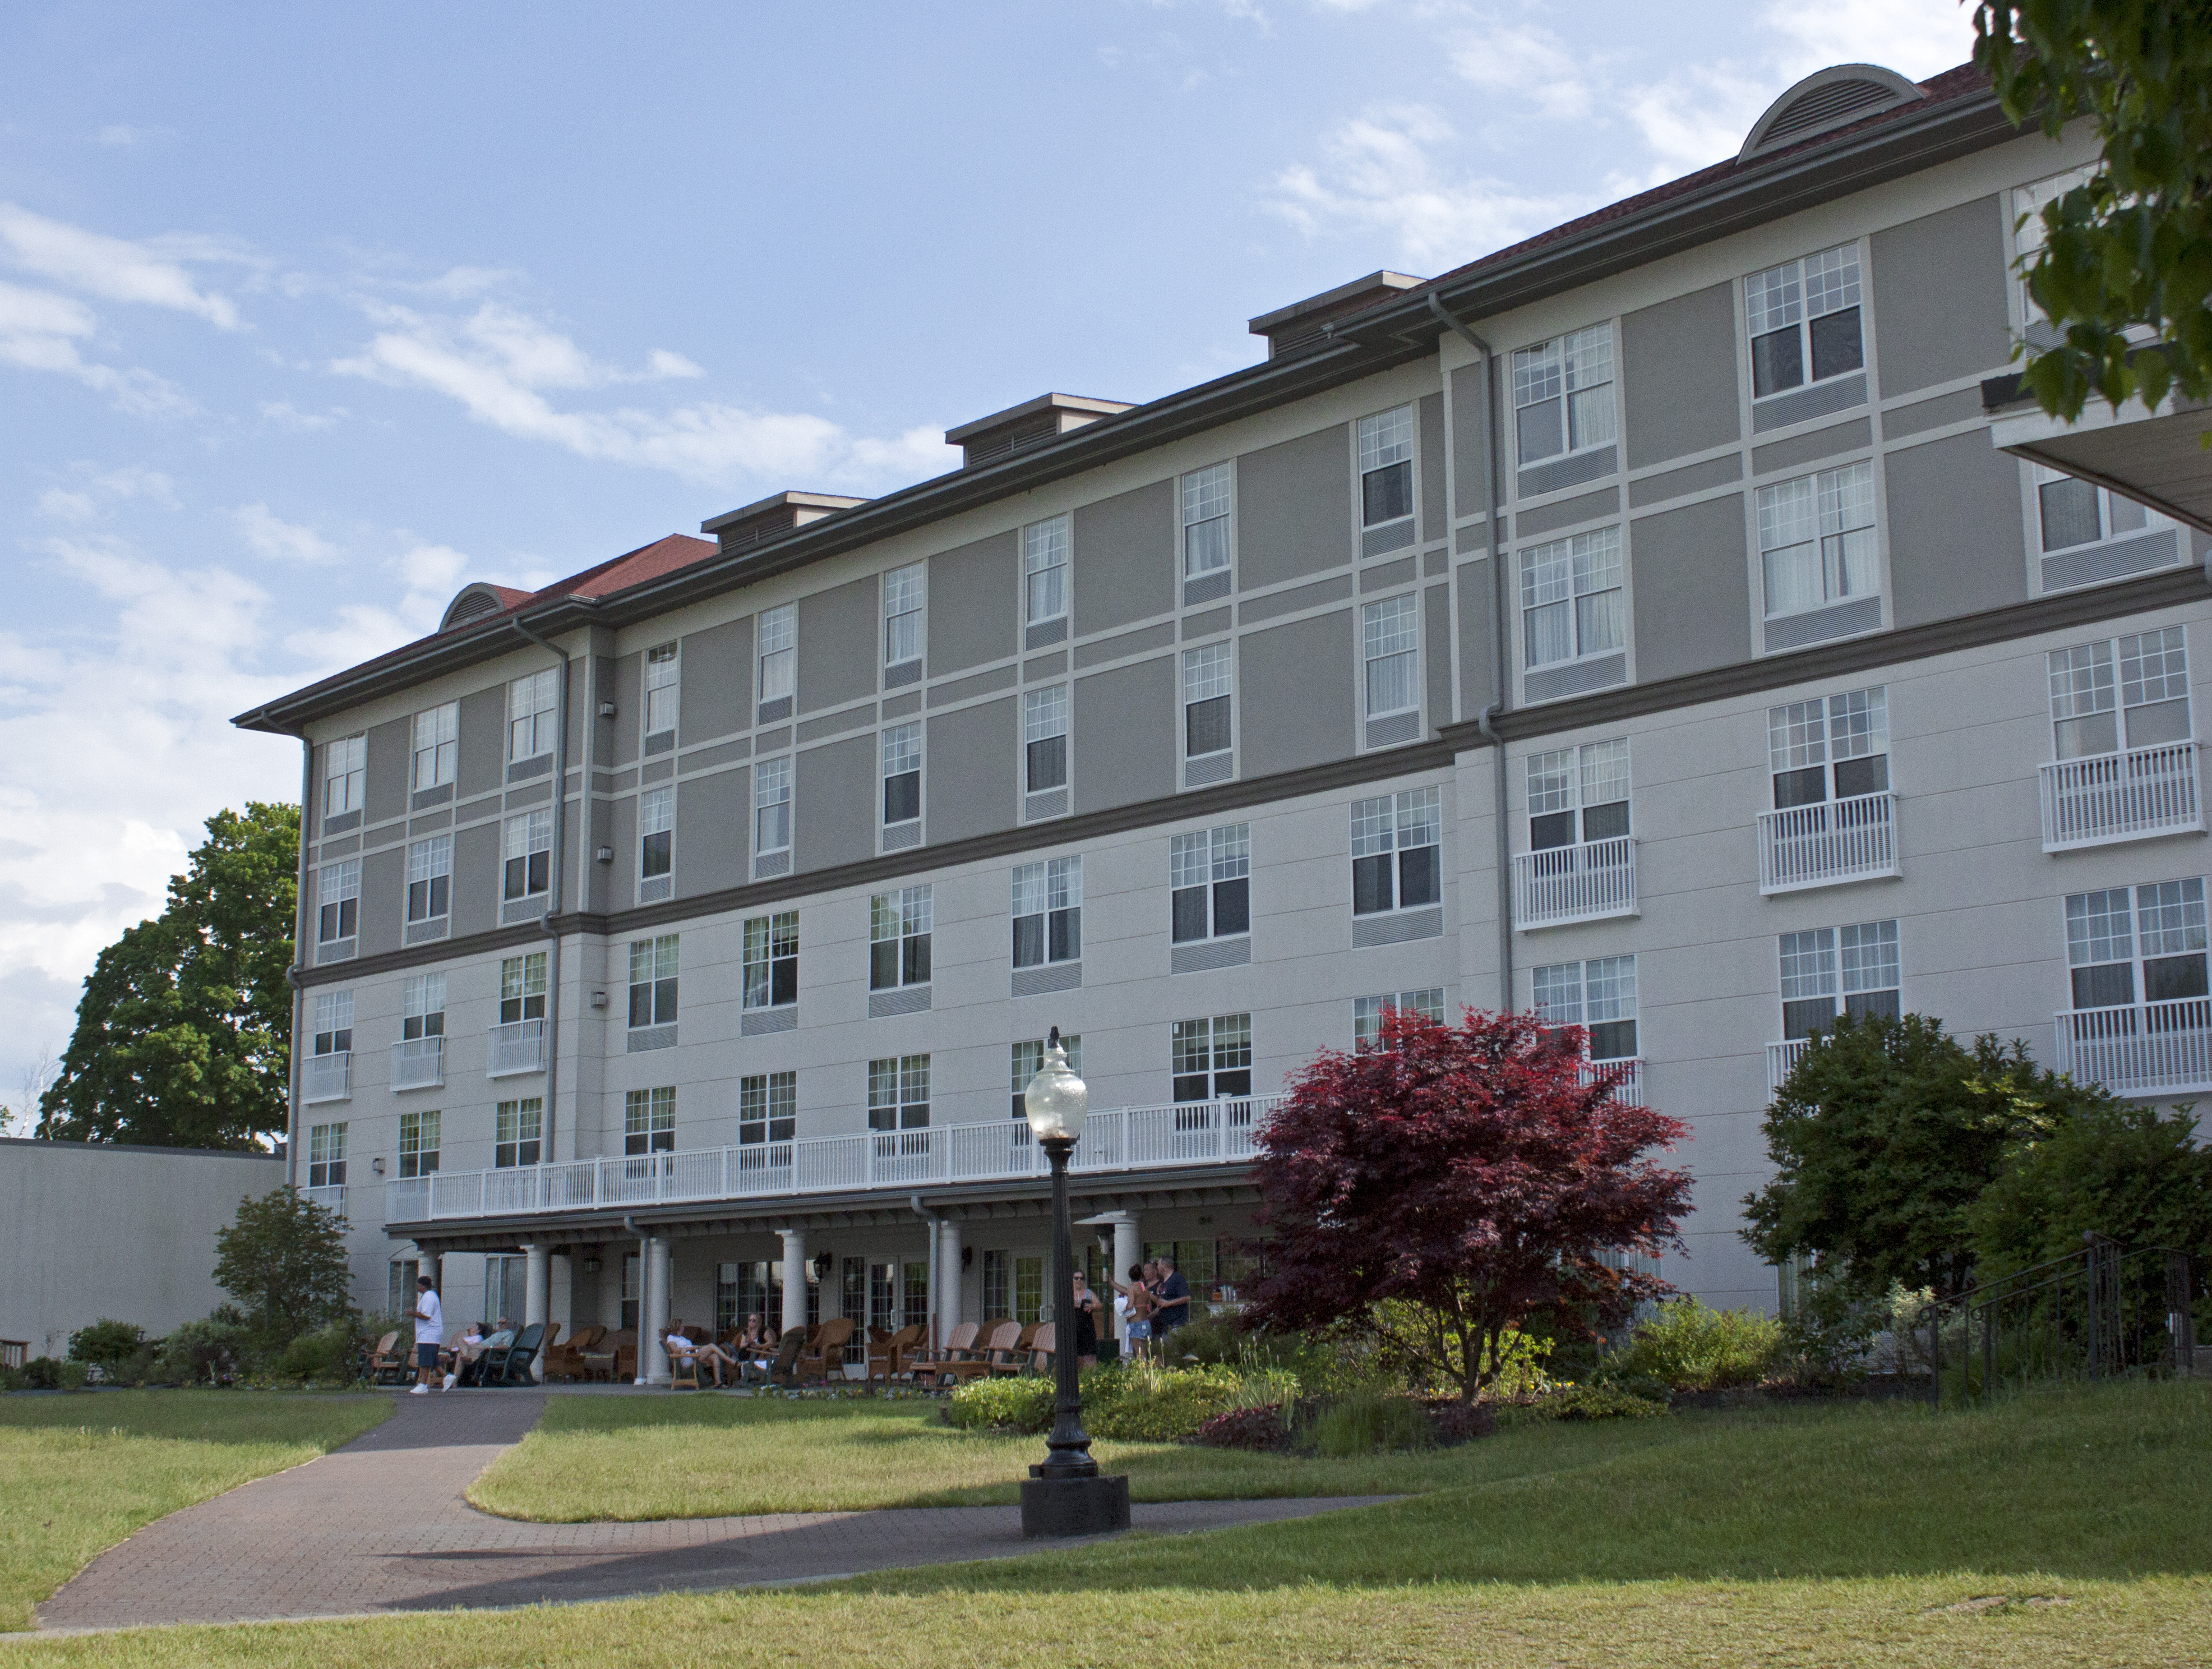 Fort William Henry Hotel & Conference Center - Lake George, NY